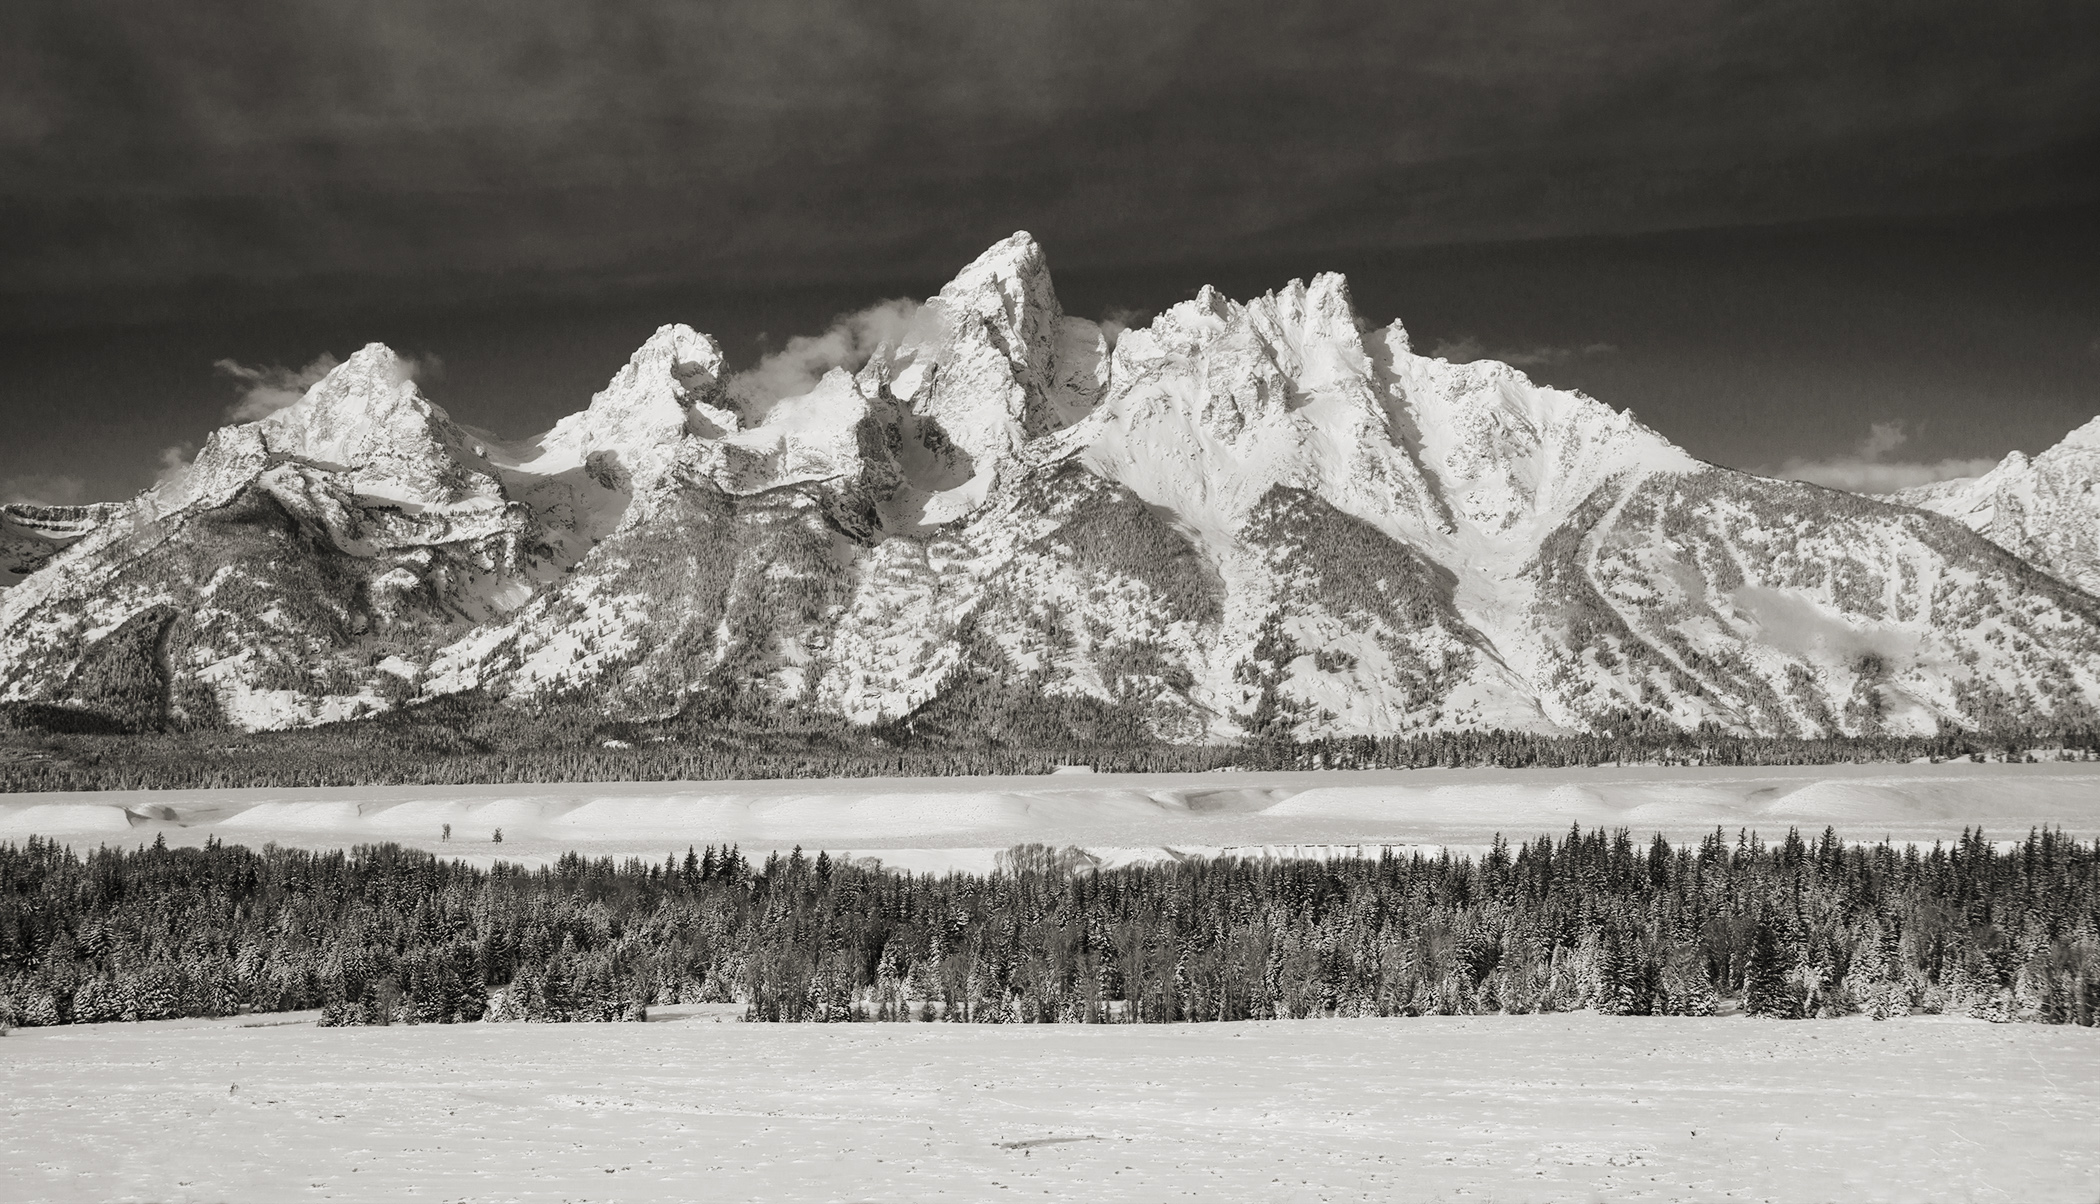 The Tetons are the most beautiful mountains any time of year, but wrap them in snow and it's game over.  Nikon D800, Nikon 28-200mm lens @ 50mm, ISO 125, f9, 1/640 sec.